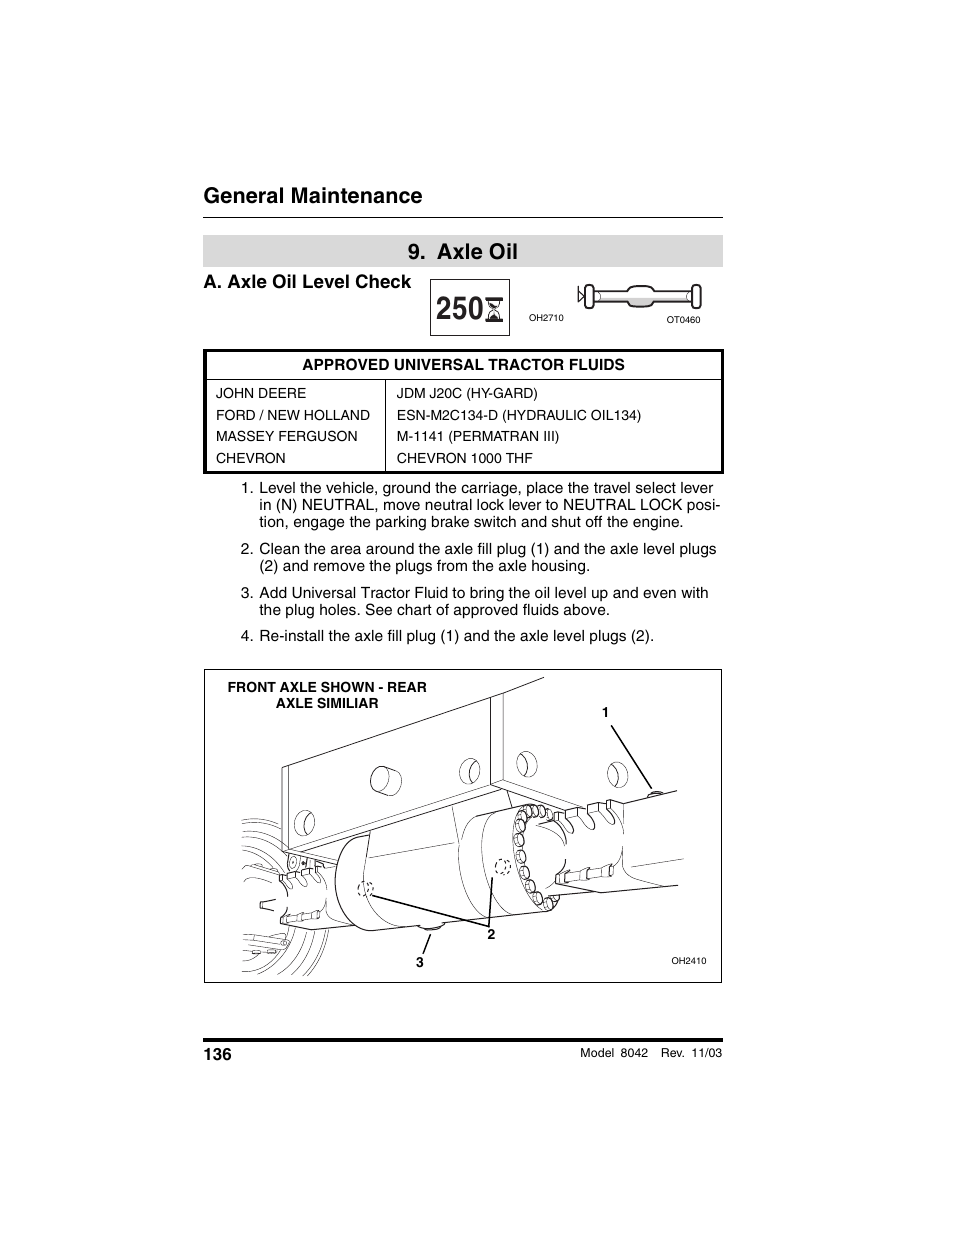 Axle Oil A Axle Oil Level Check Approved Universal Tractor